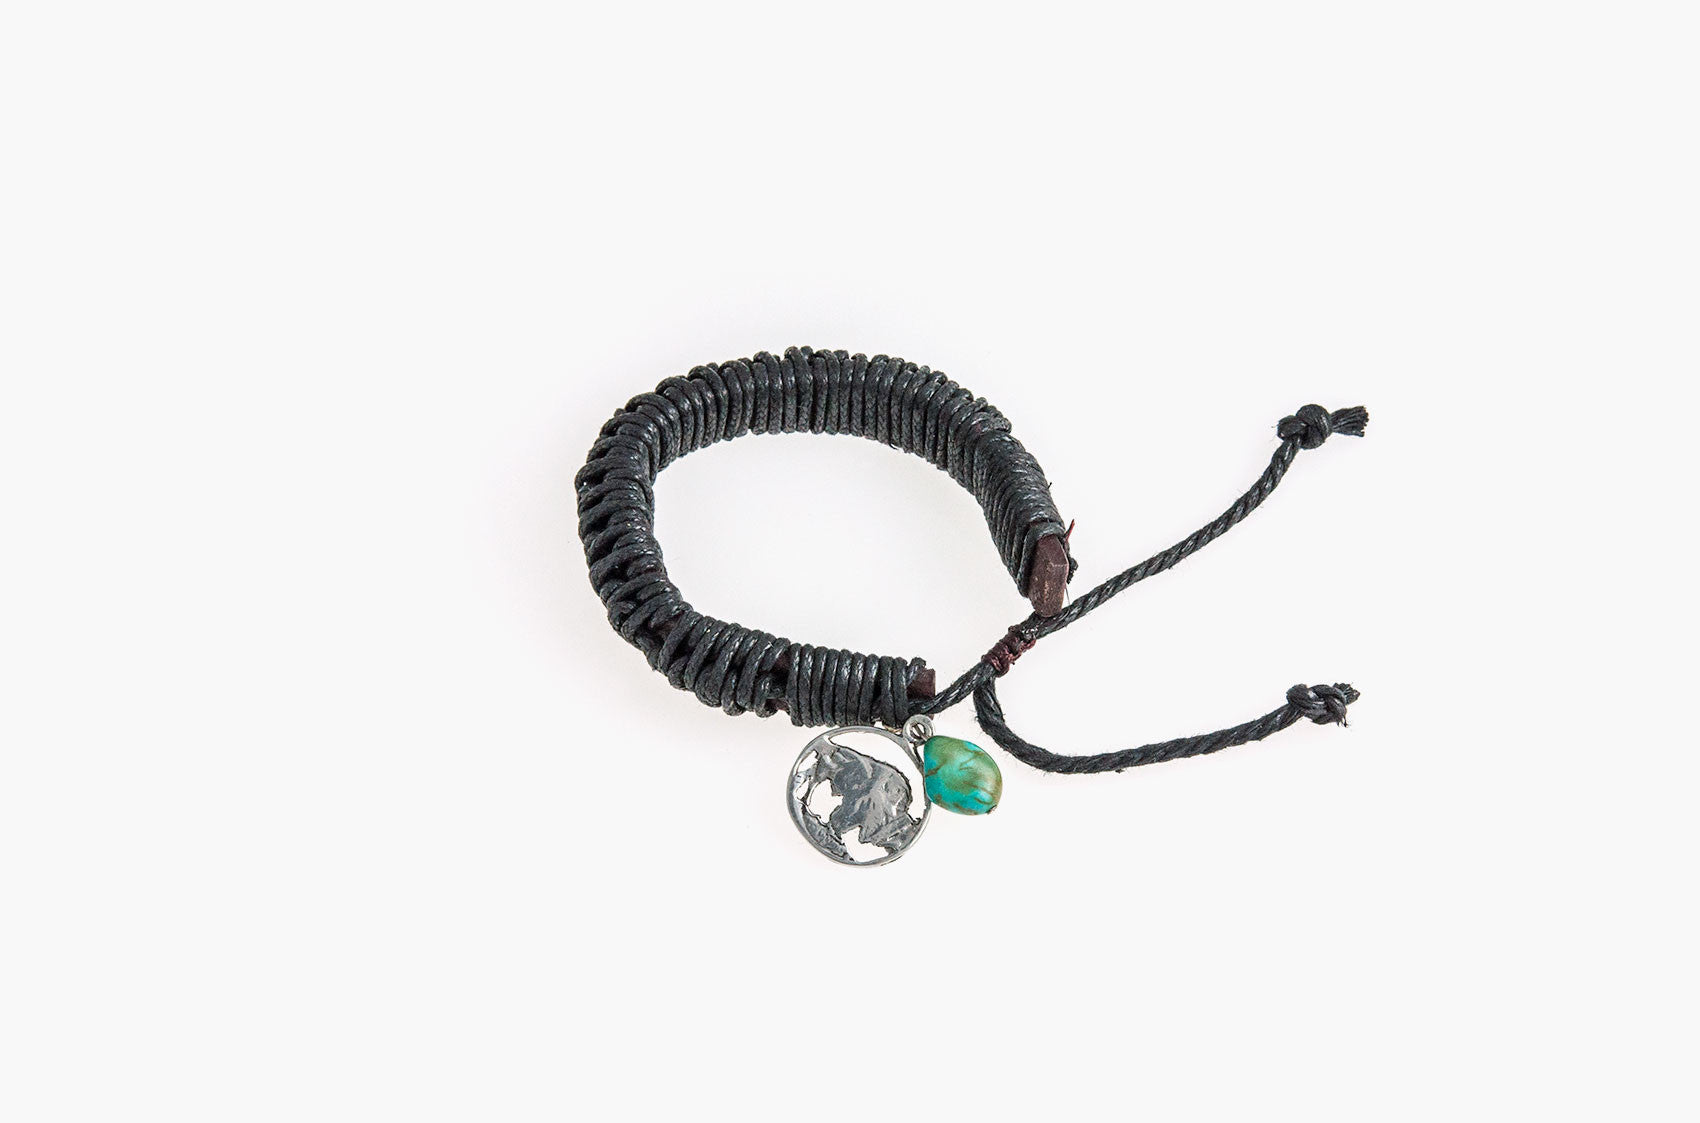 Black leather and cord bracelet with turquoise